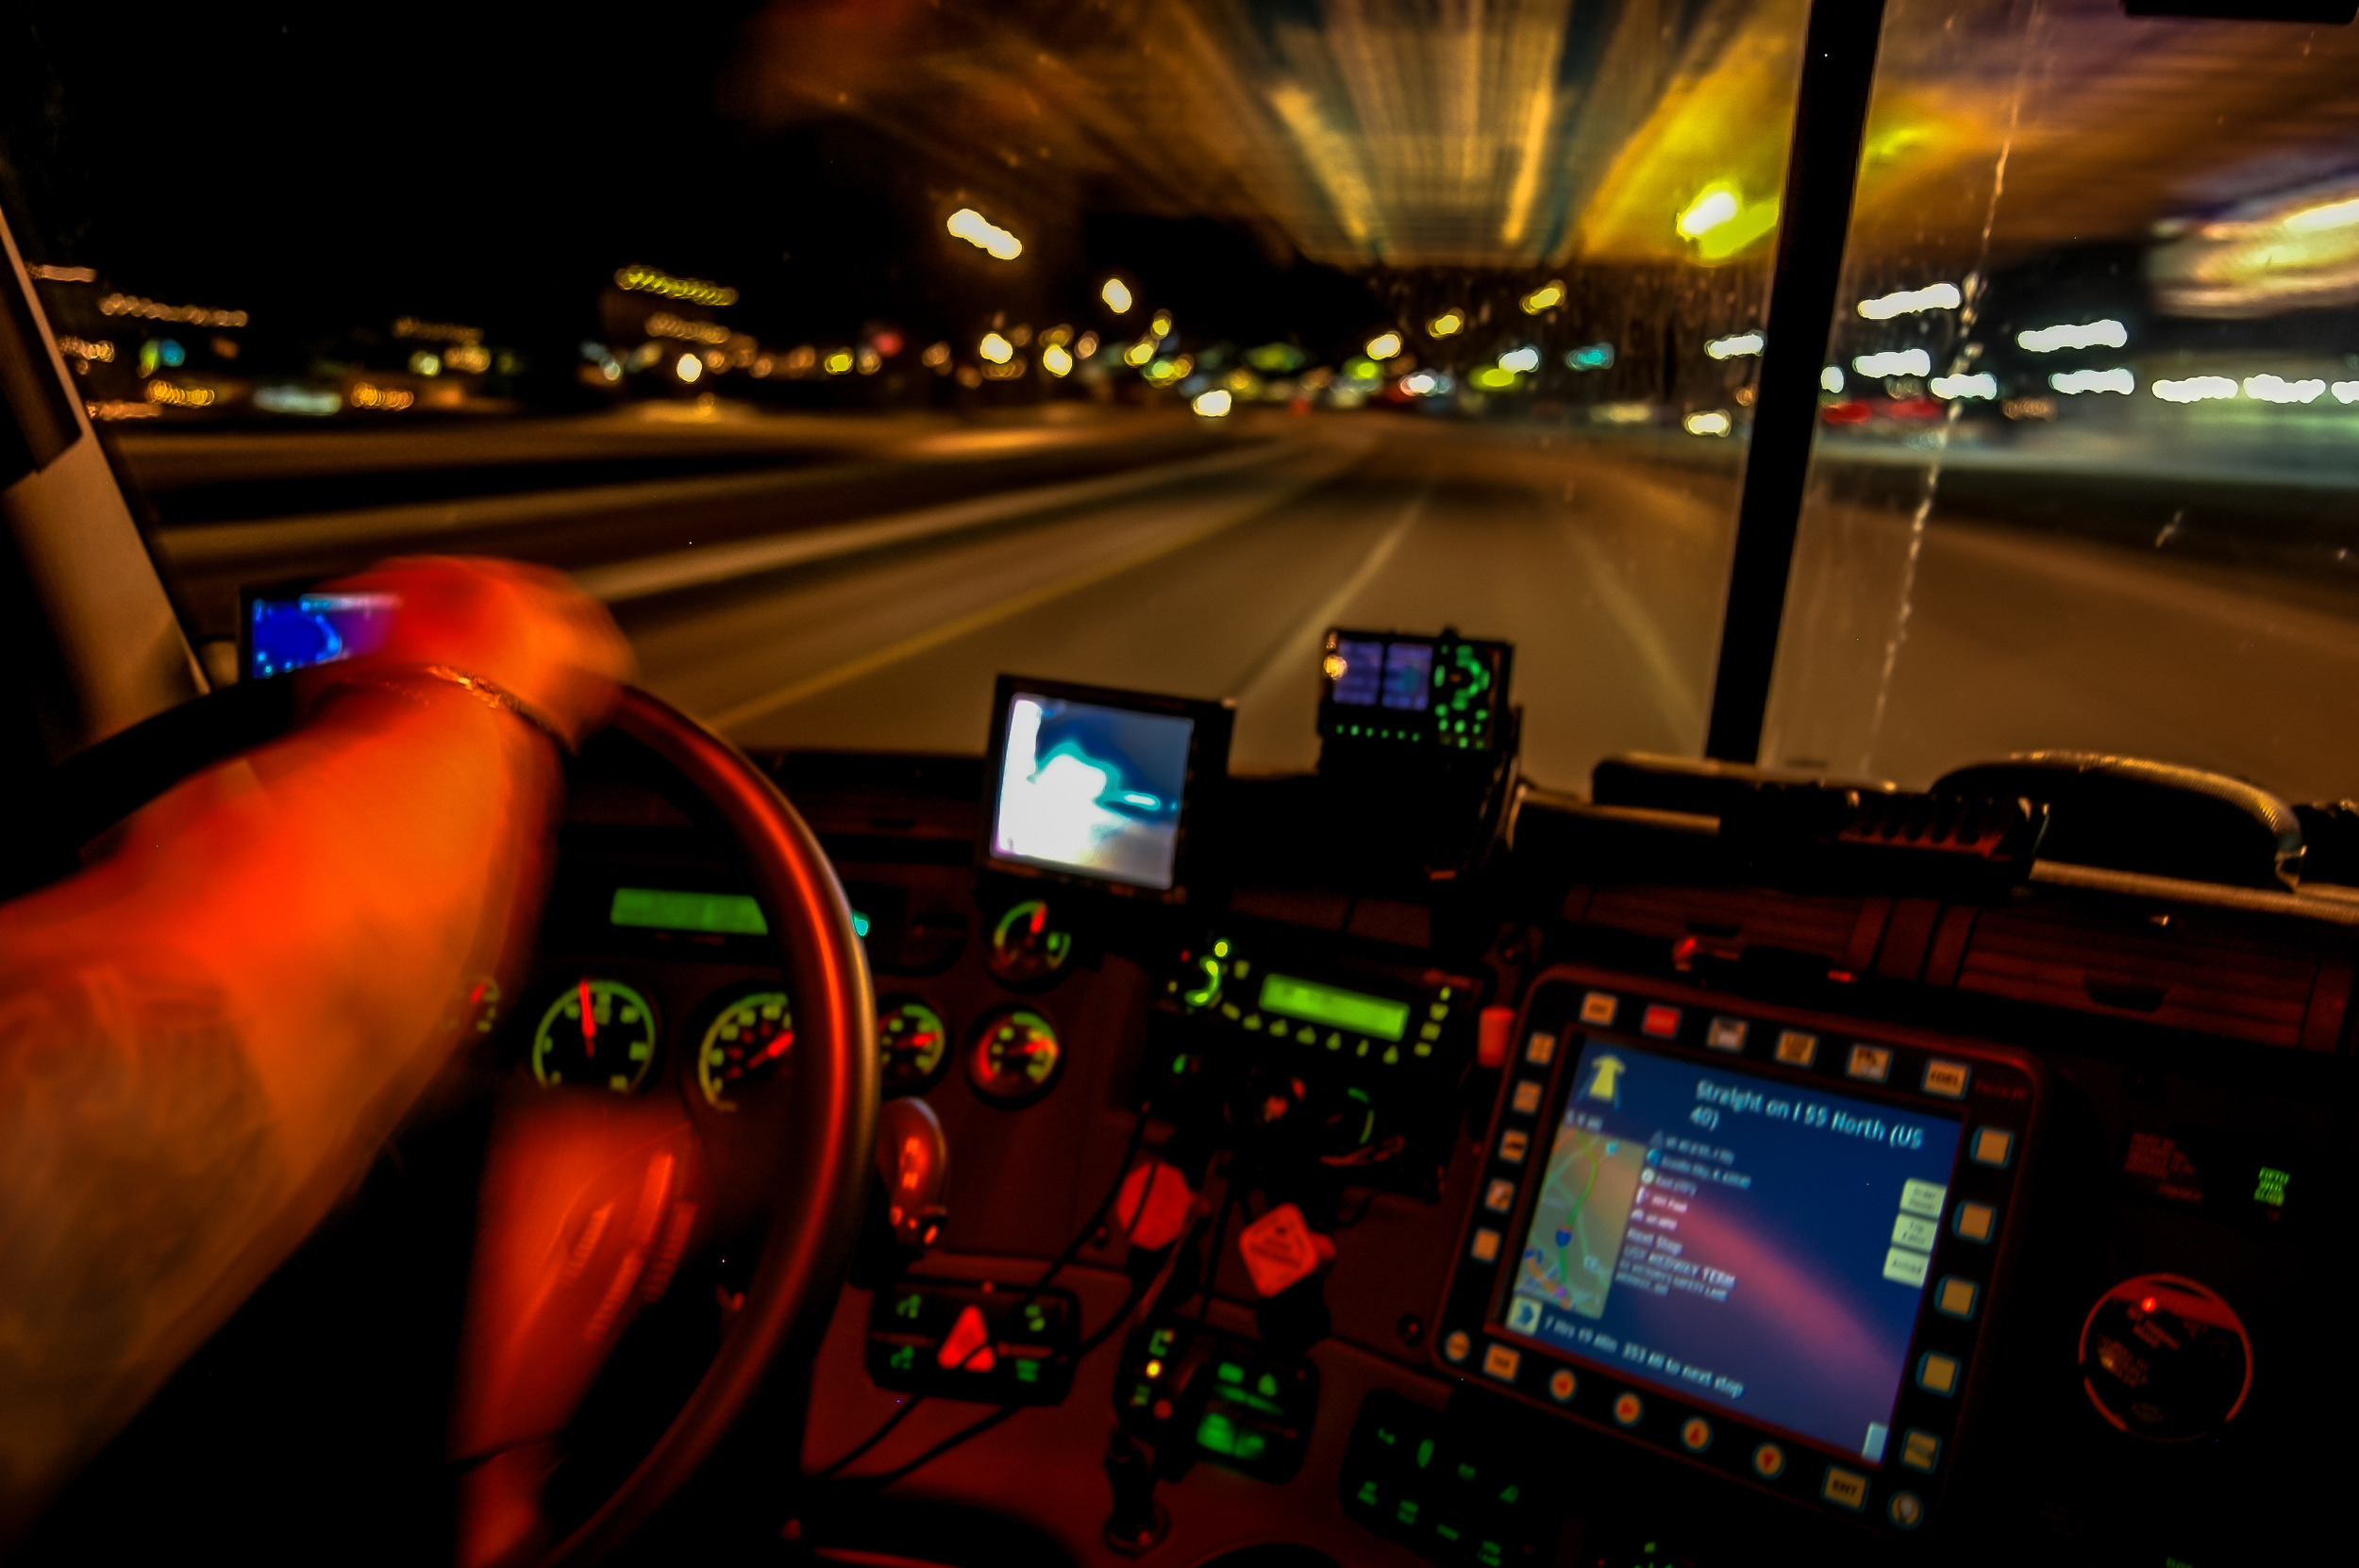 b_usxpress_truck_interior_011509_3